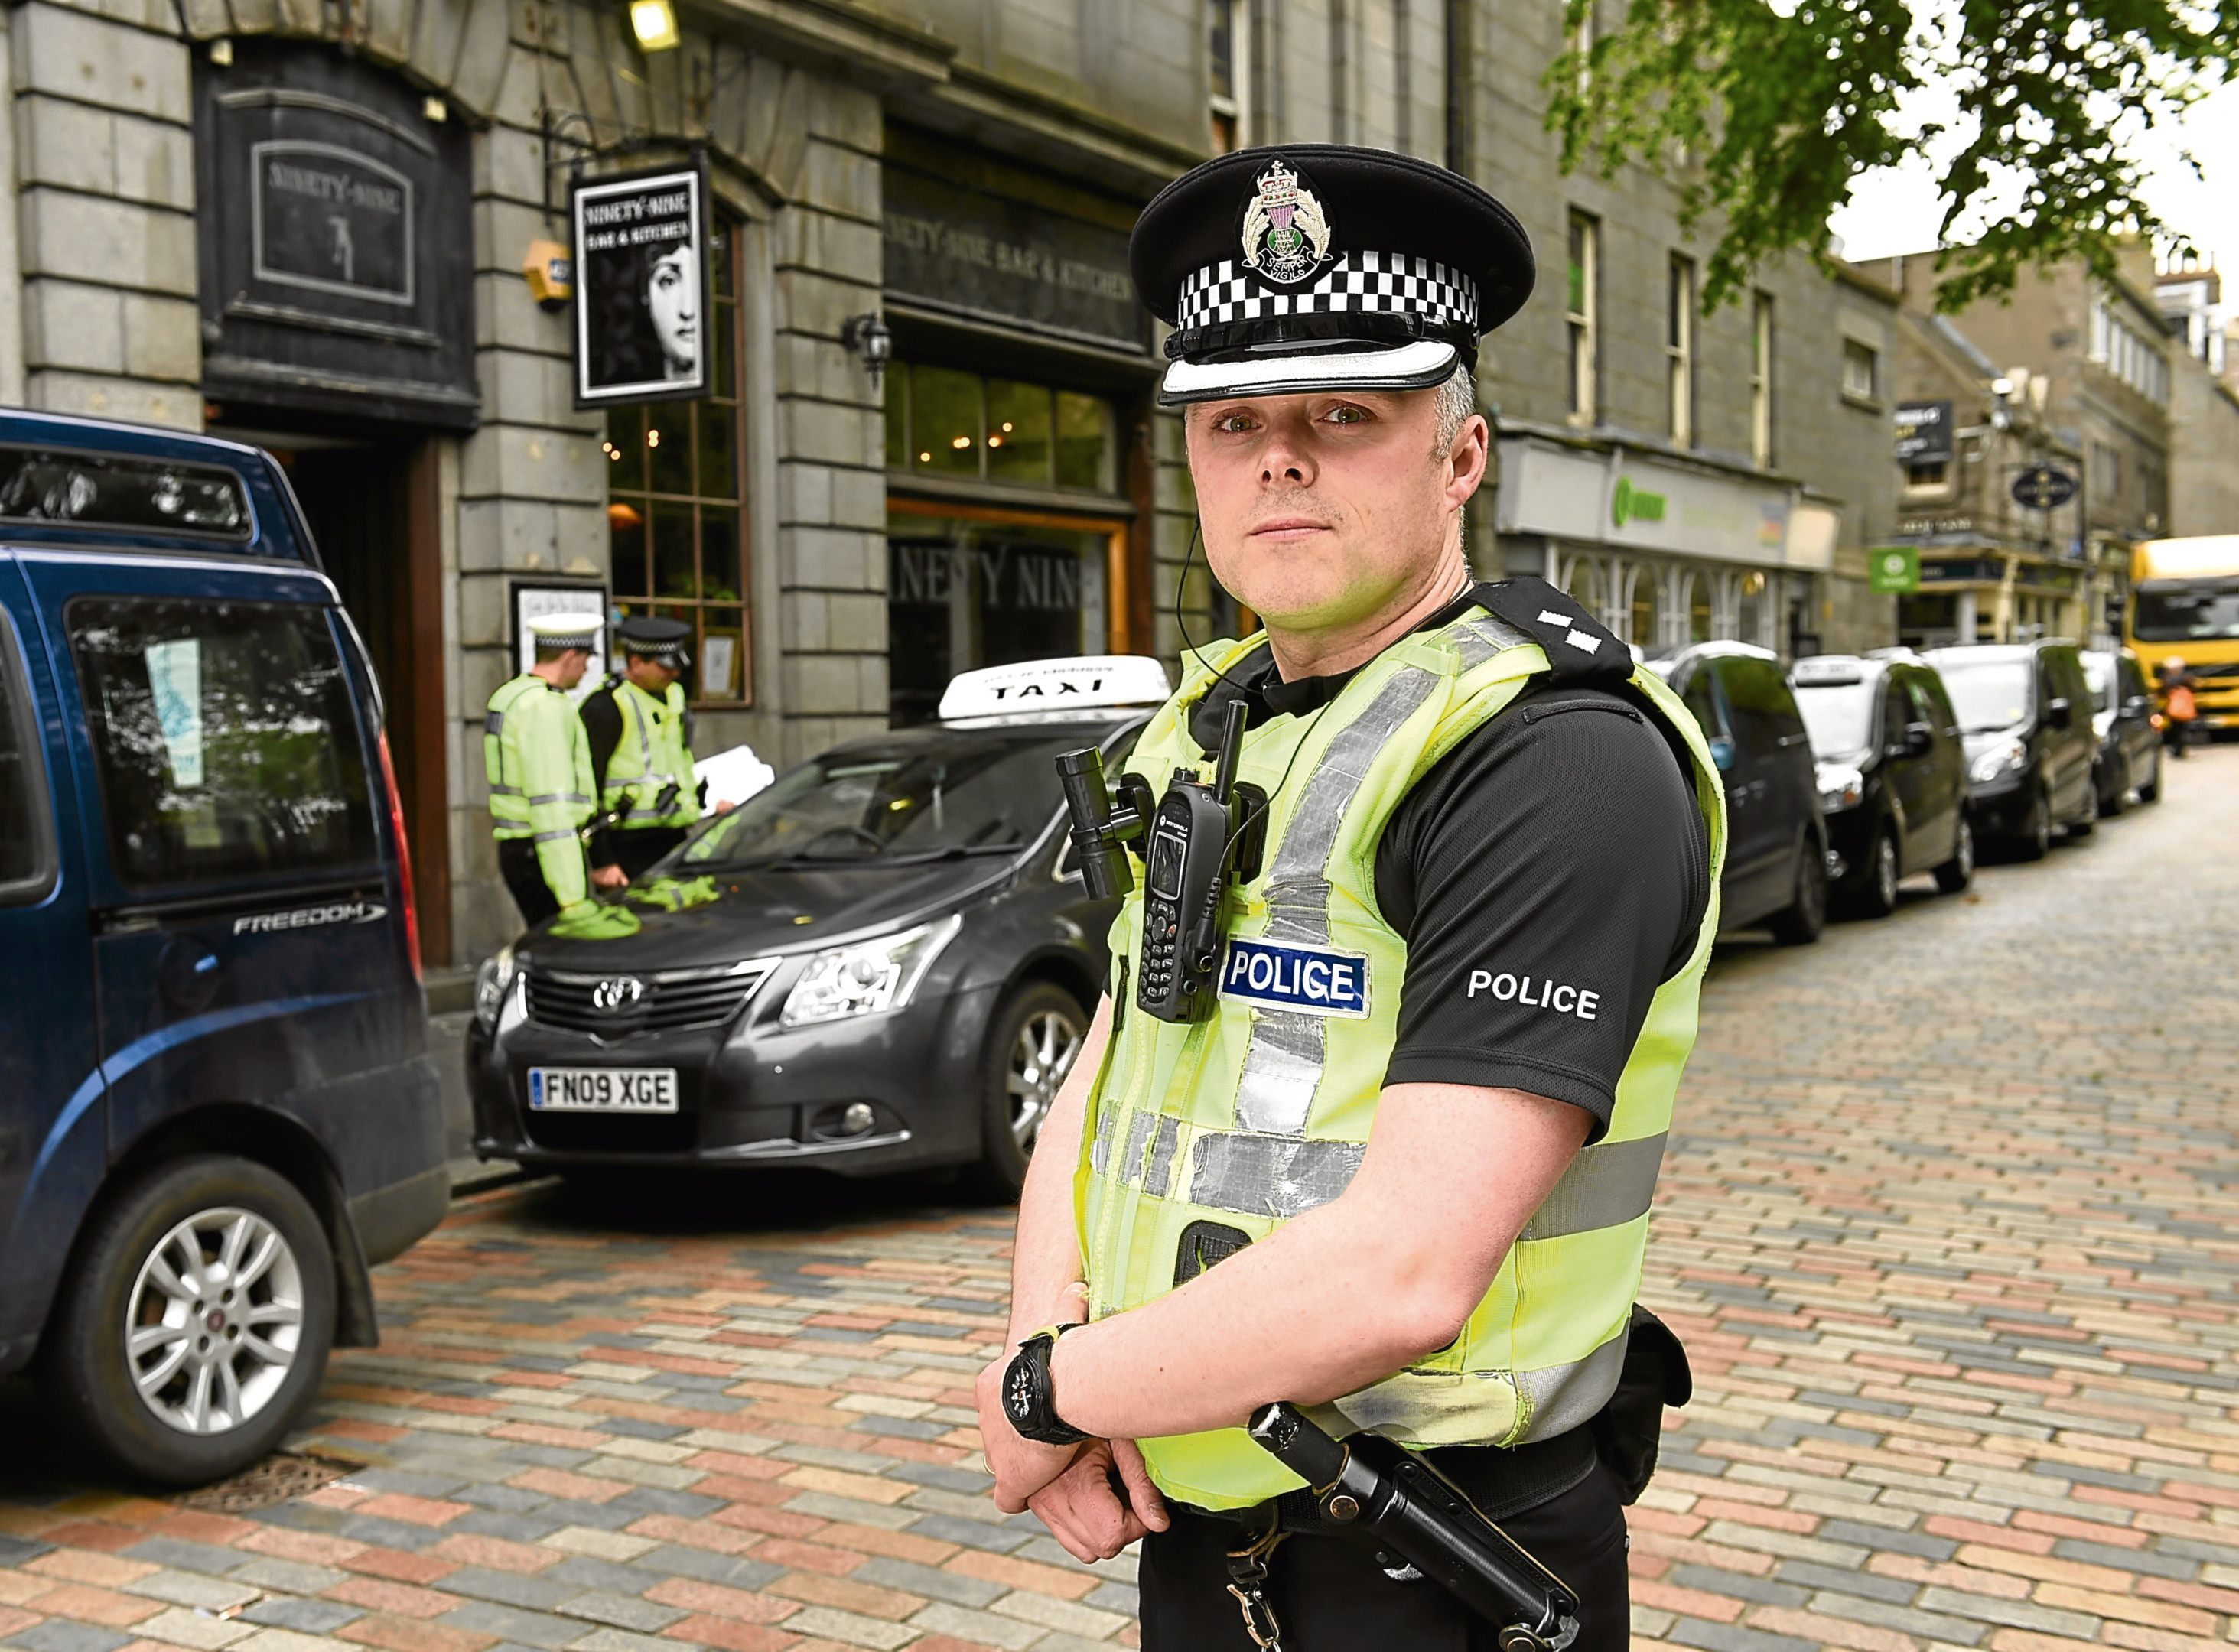 Pictured is Licensing Inspector Kenny McGeough during an operation on taxi licensing and road policing on Back Wynd, Aberdeen. Picture by DARRELL BENNS     Pictured on 19/05/2017